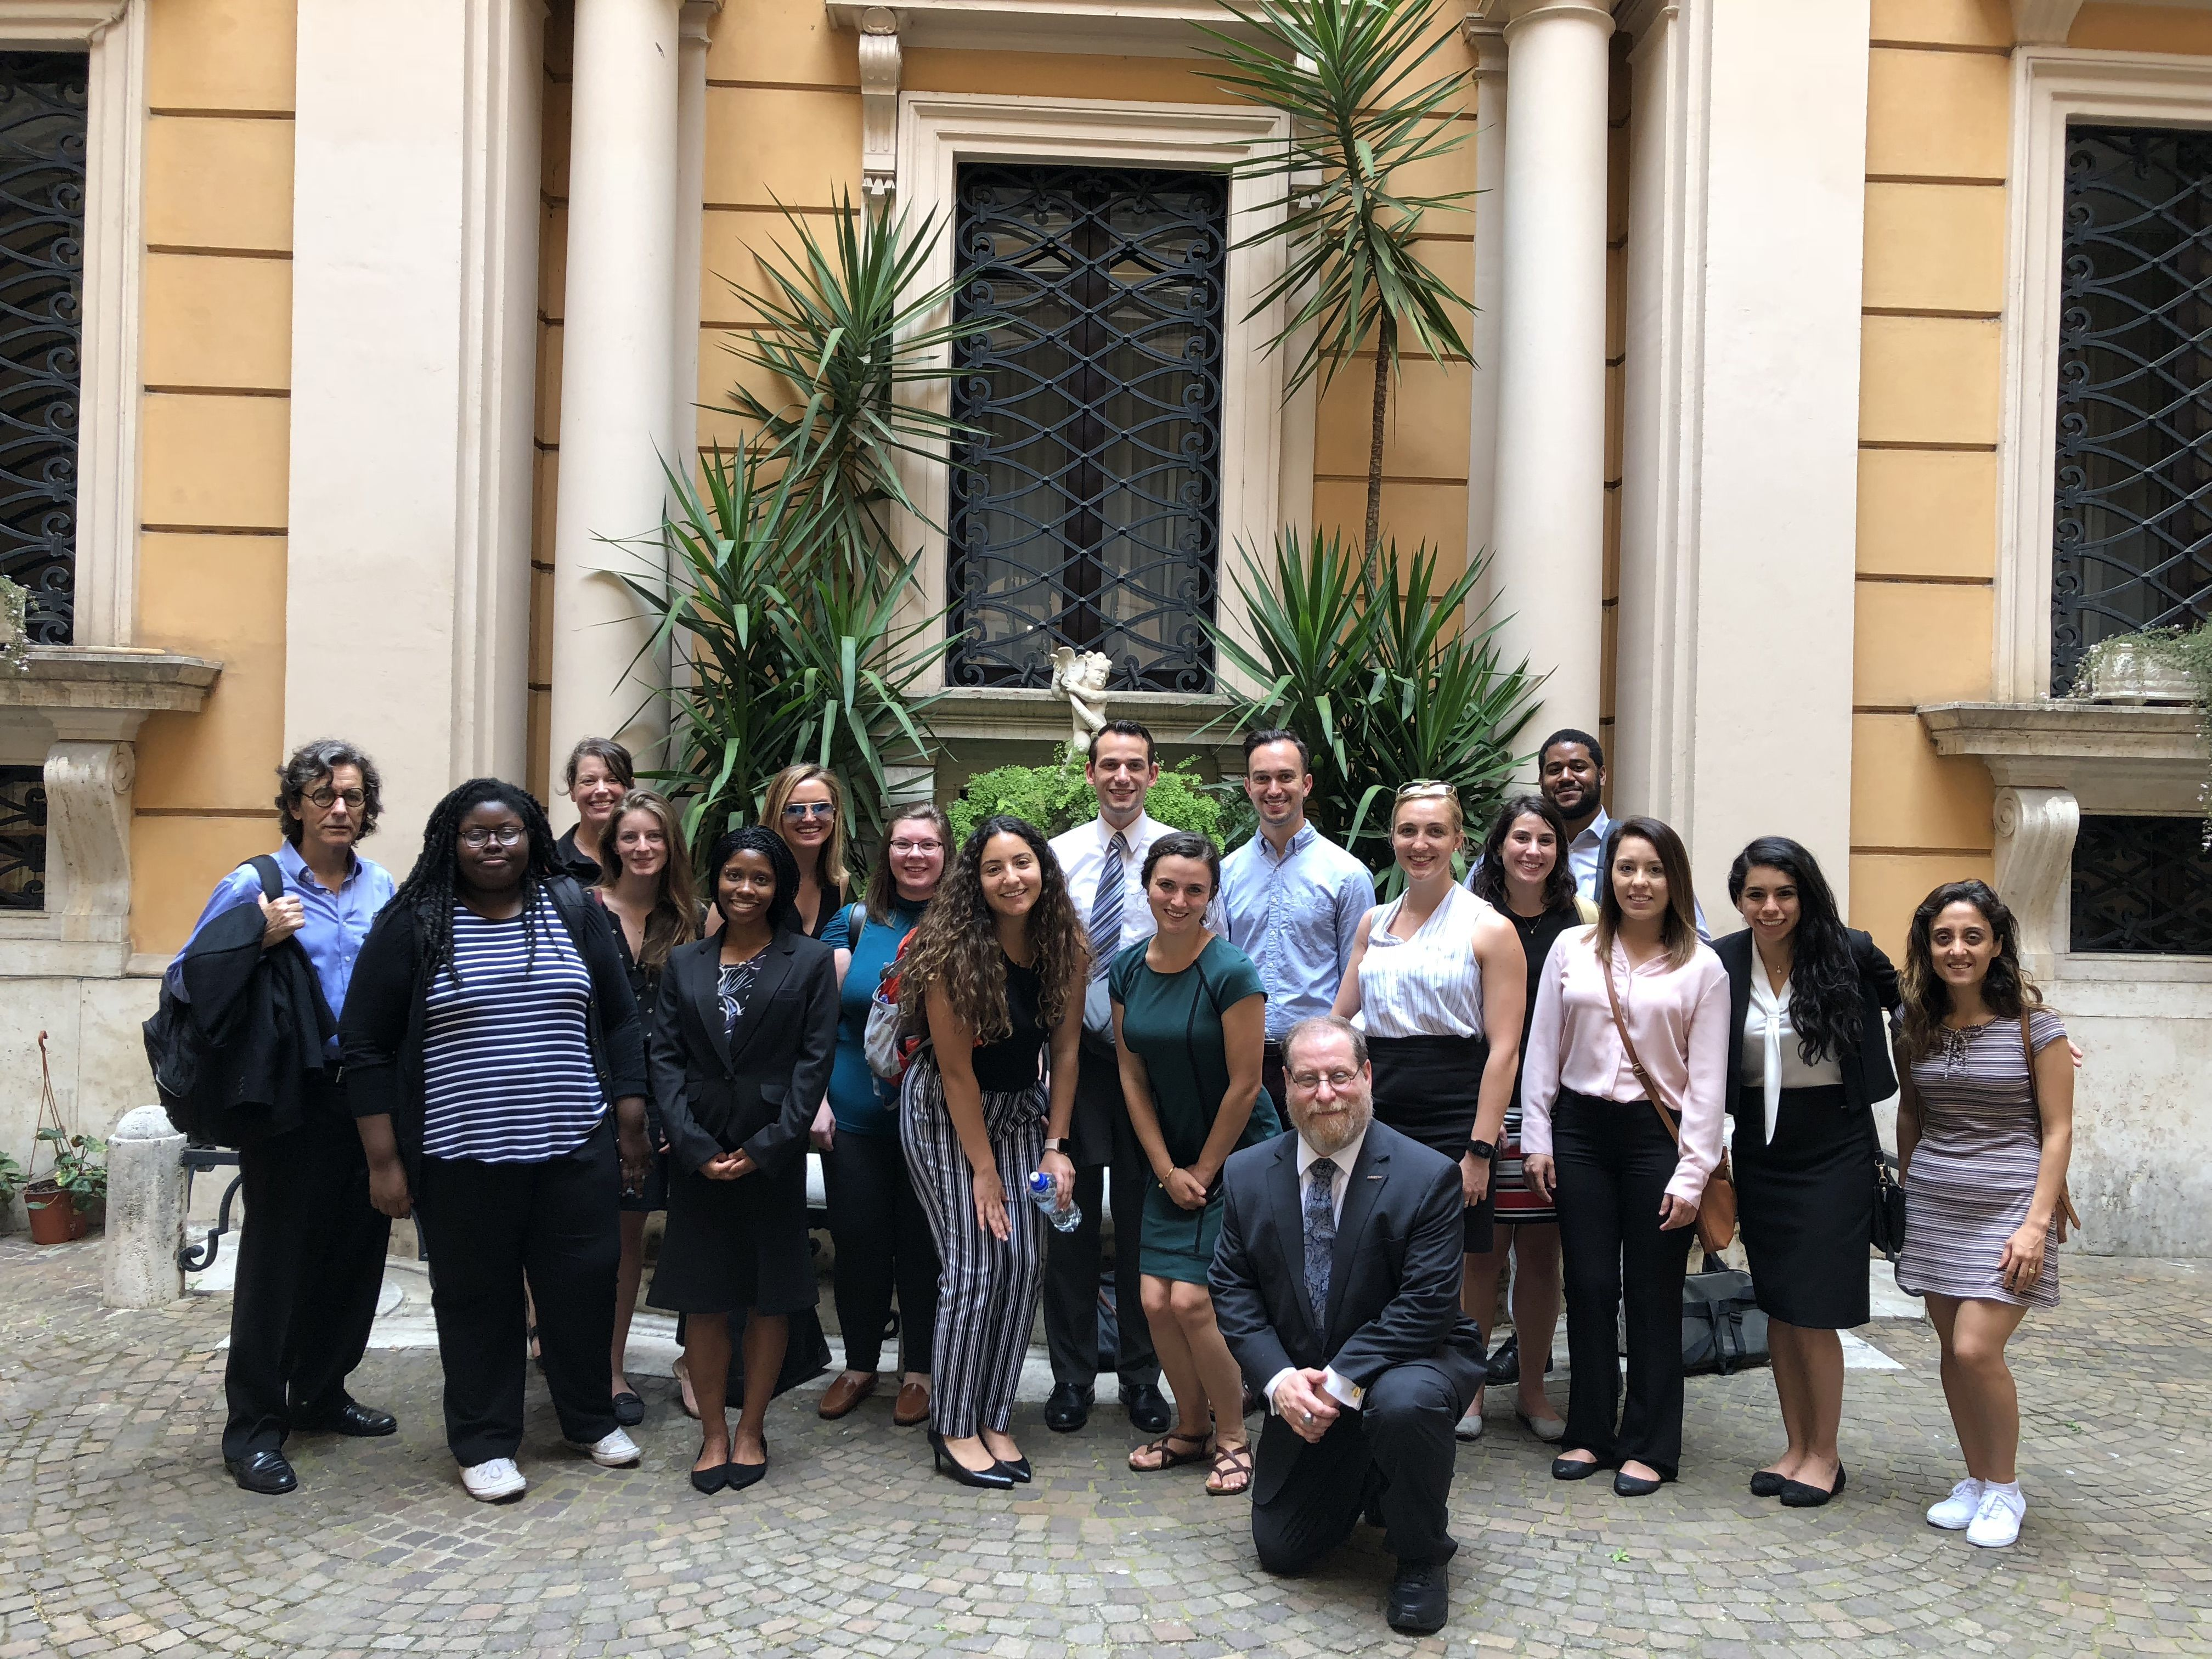 Temple Law Summer Rome Program offers students the opportunity for cultural immersion trips in Rome, Italy.